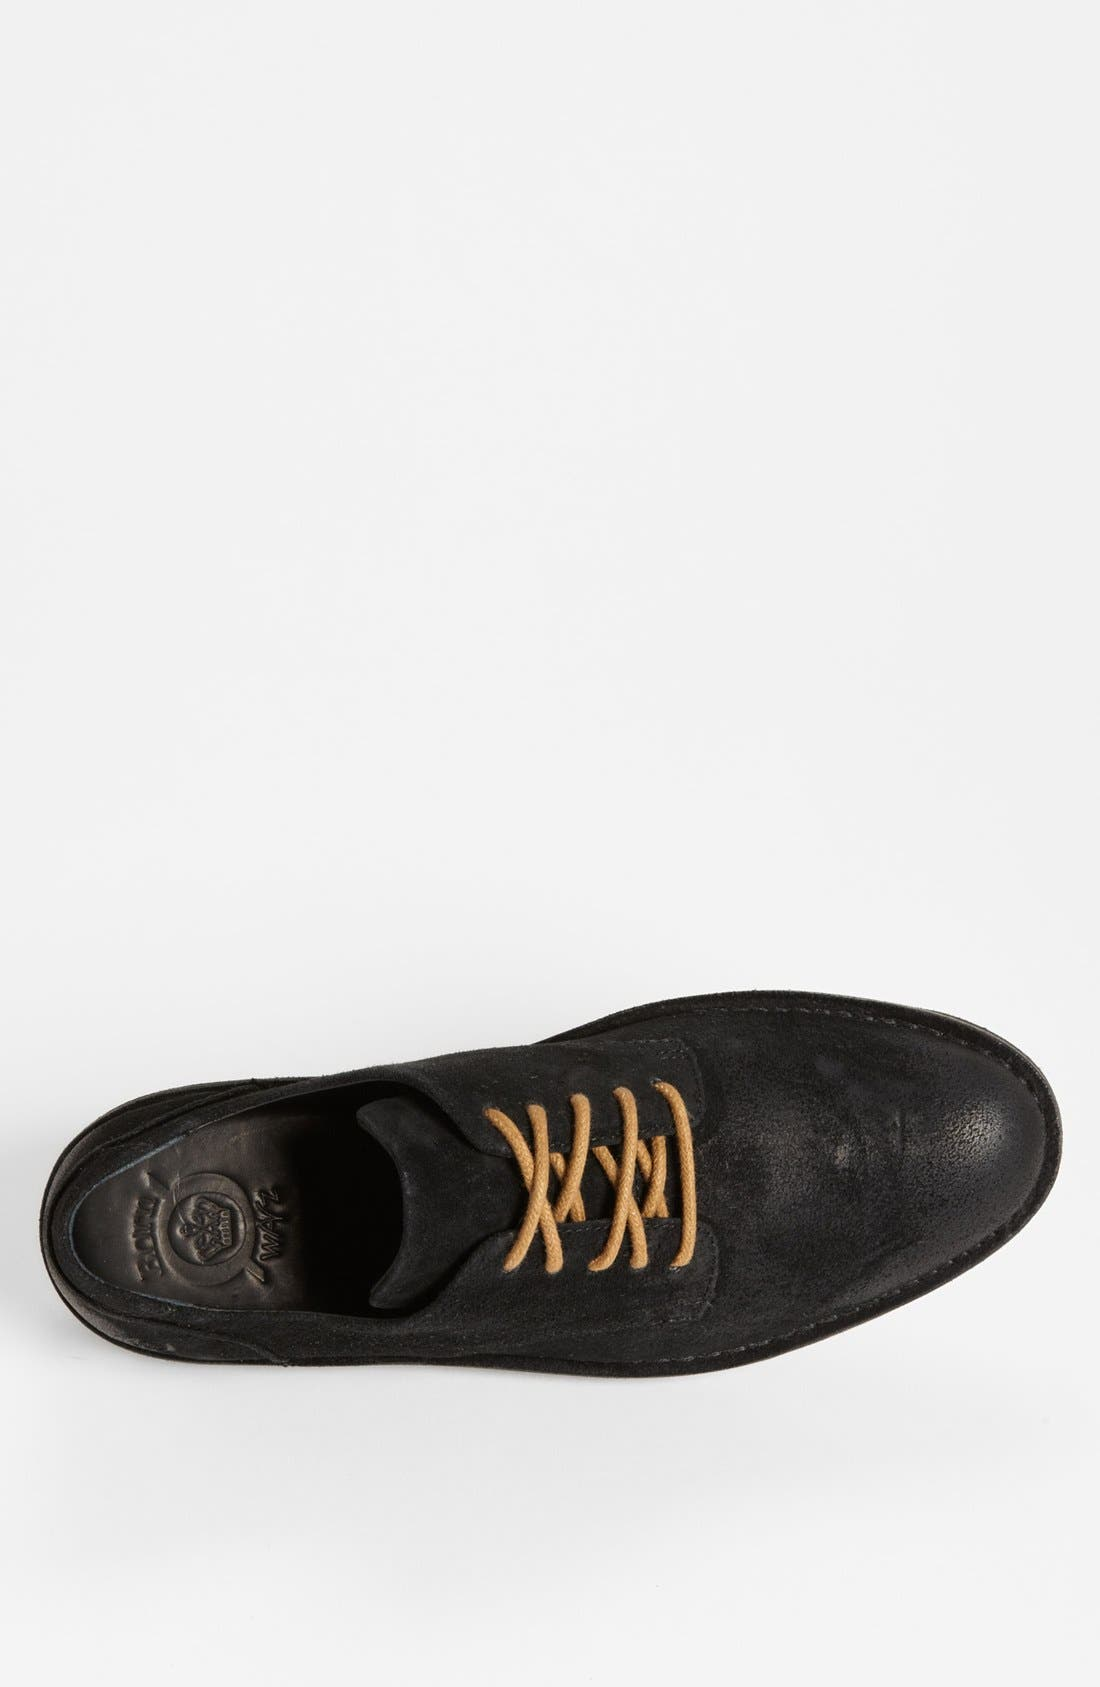 Alternate Image 3  - Børn 'Thayer' Buck Shoe (Men)